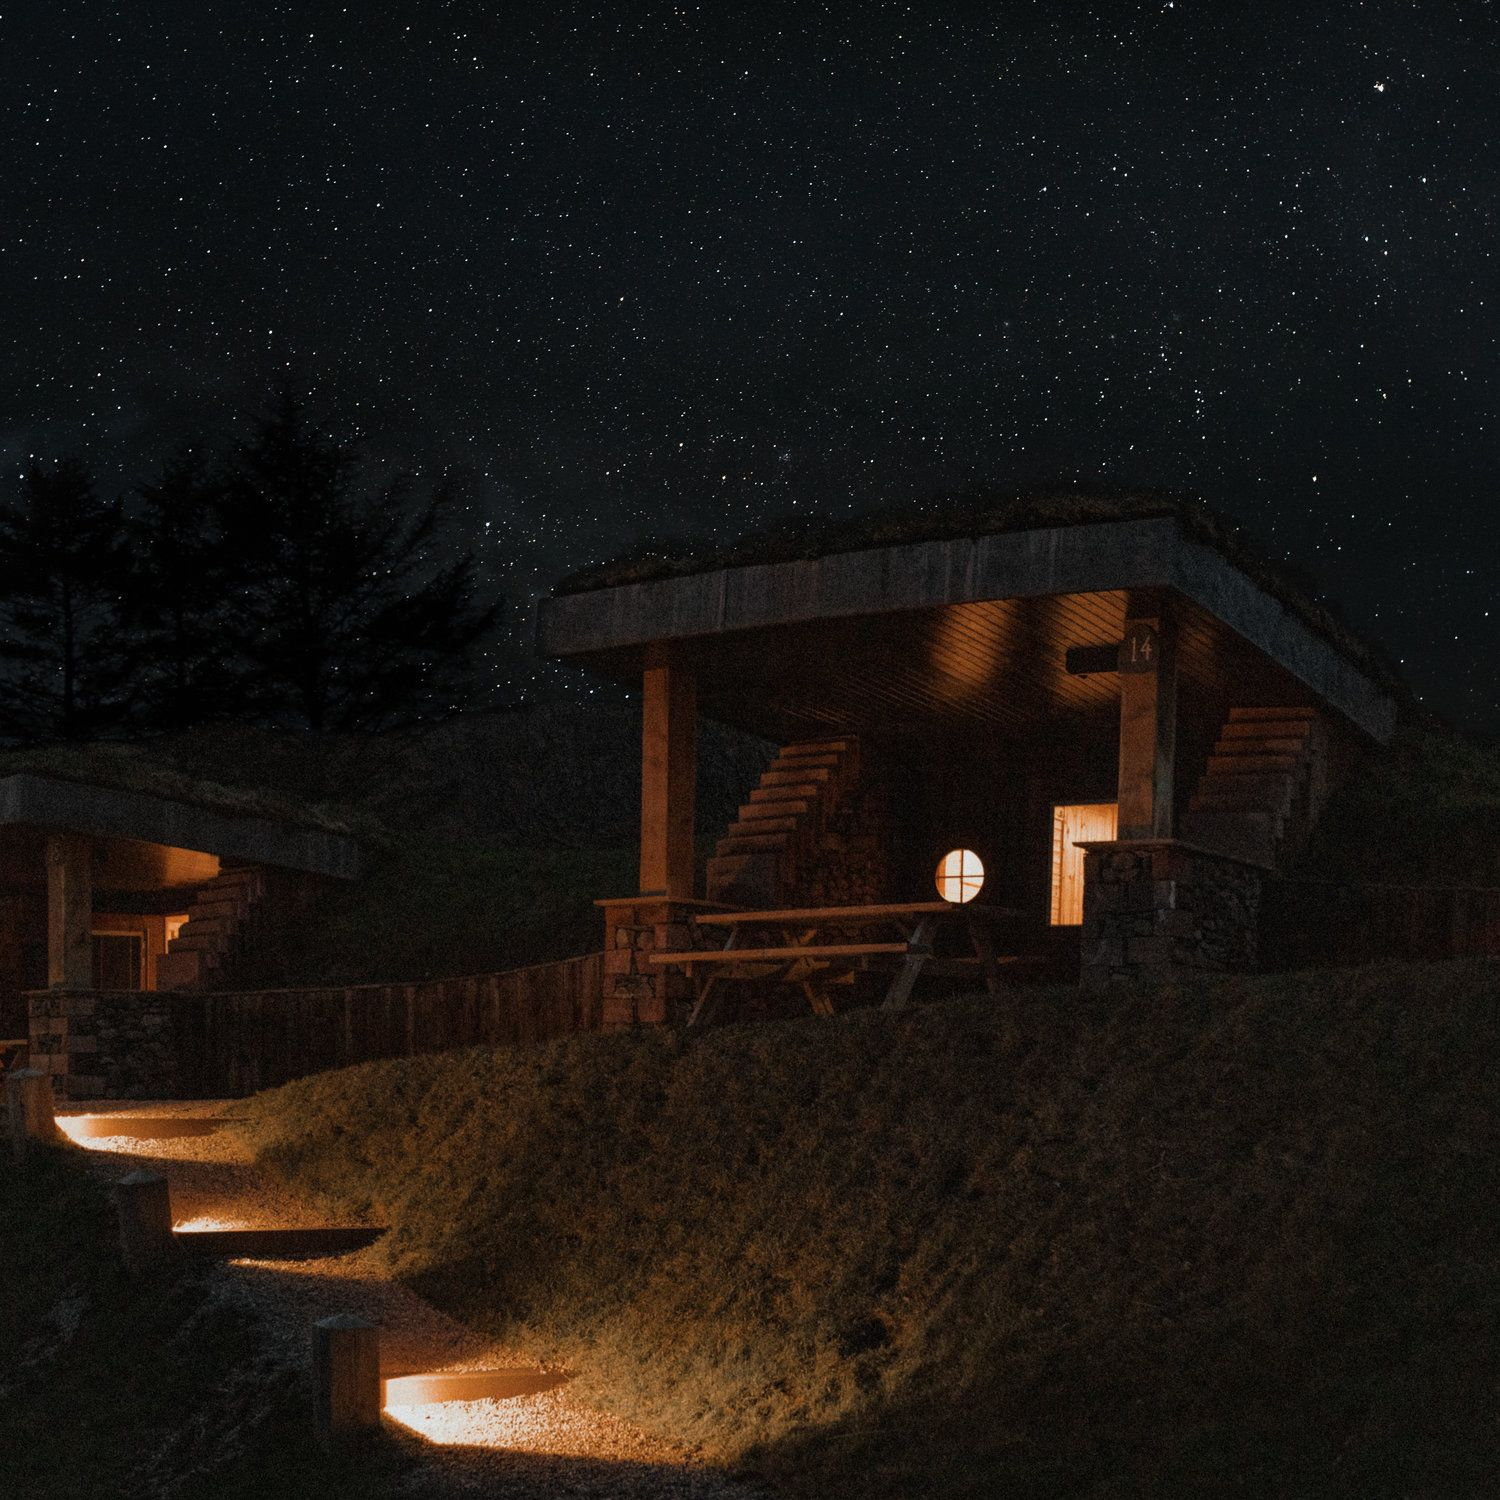 Commercial Glamping at The Quiet Site by Amy Robinson